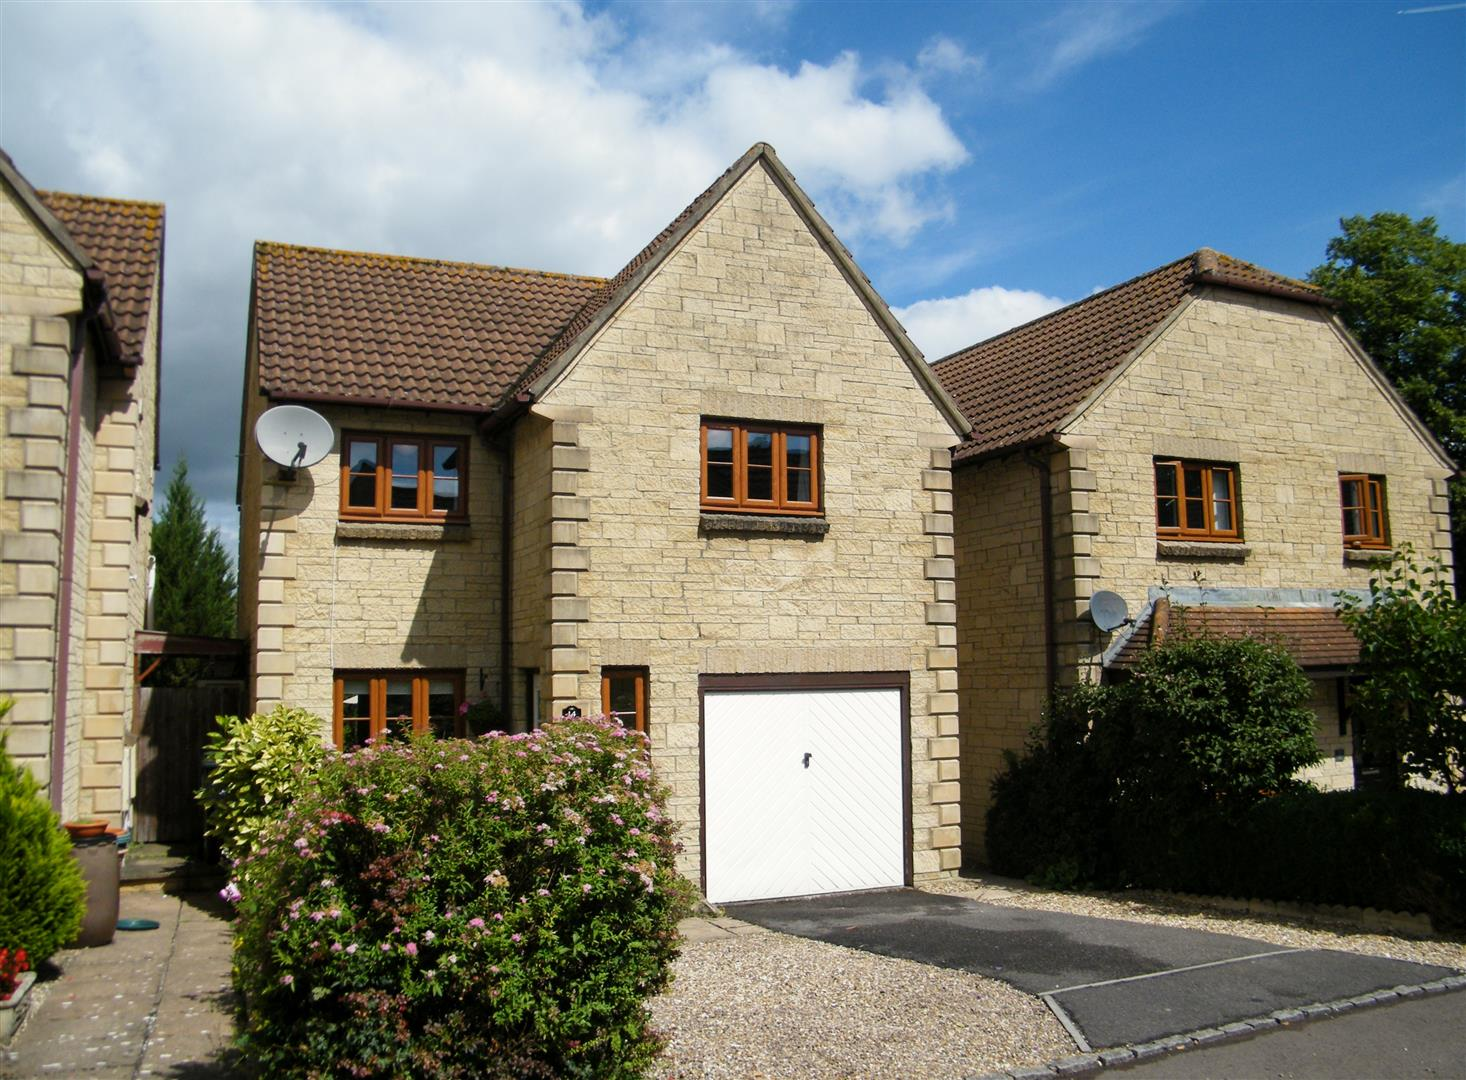 3 Bedrooms Detached House for sale in Lilac Way, Calne